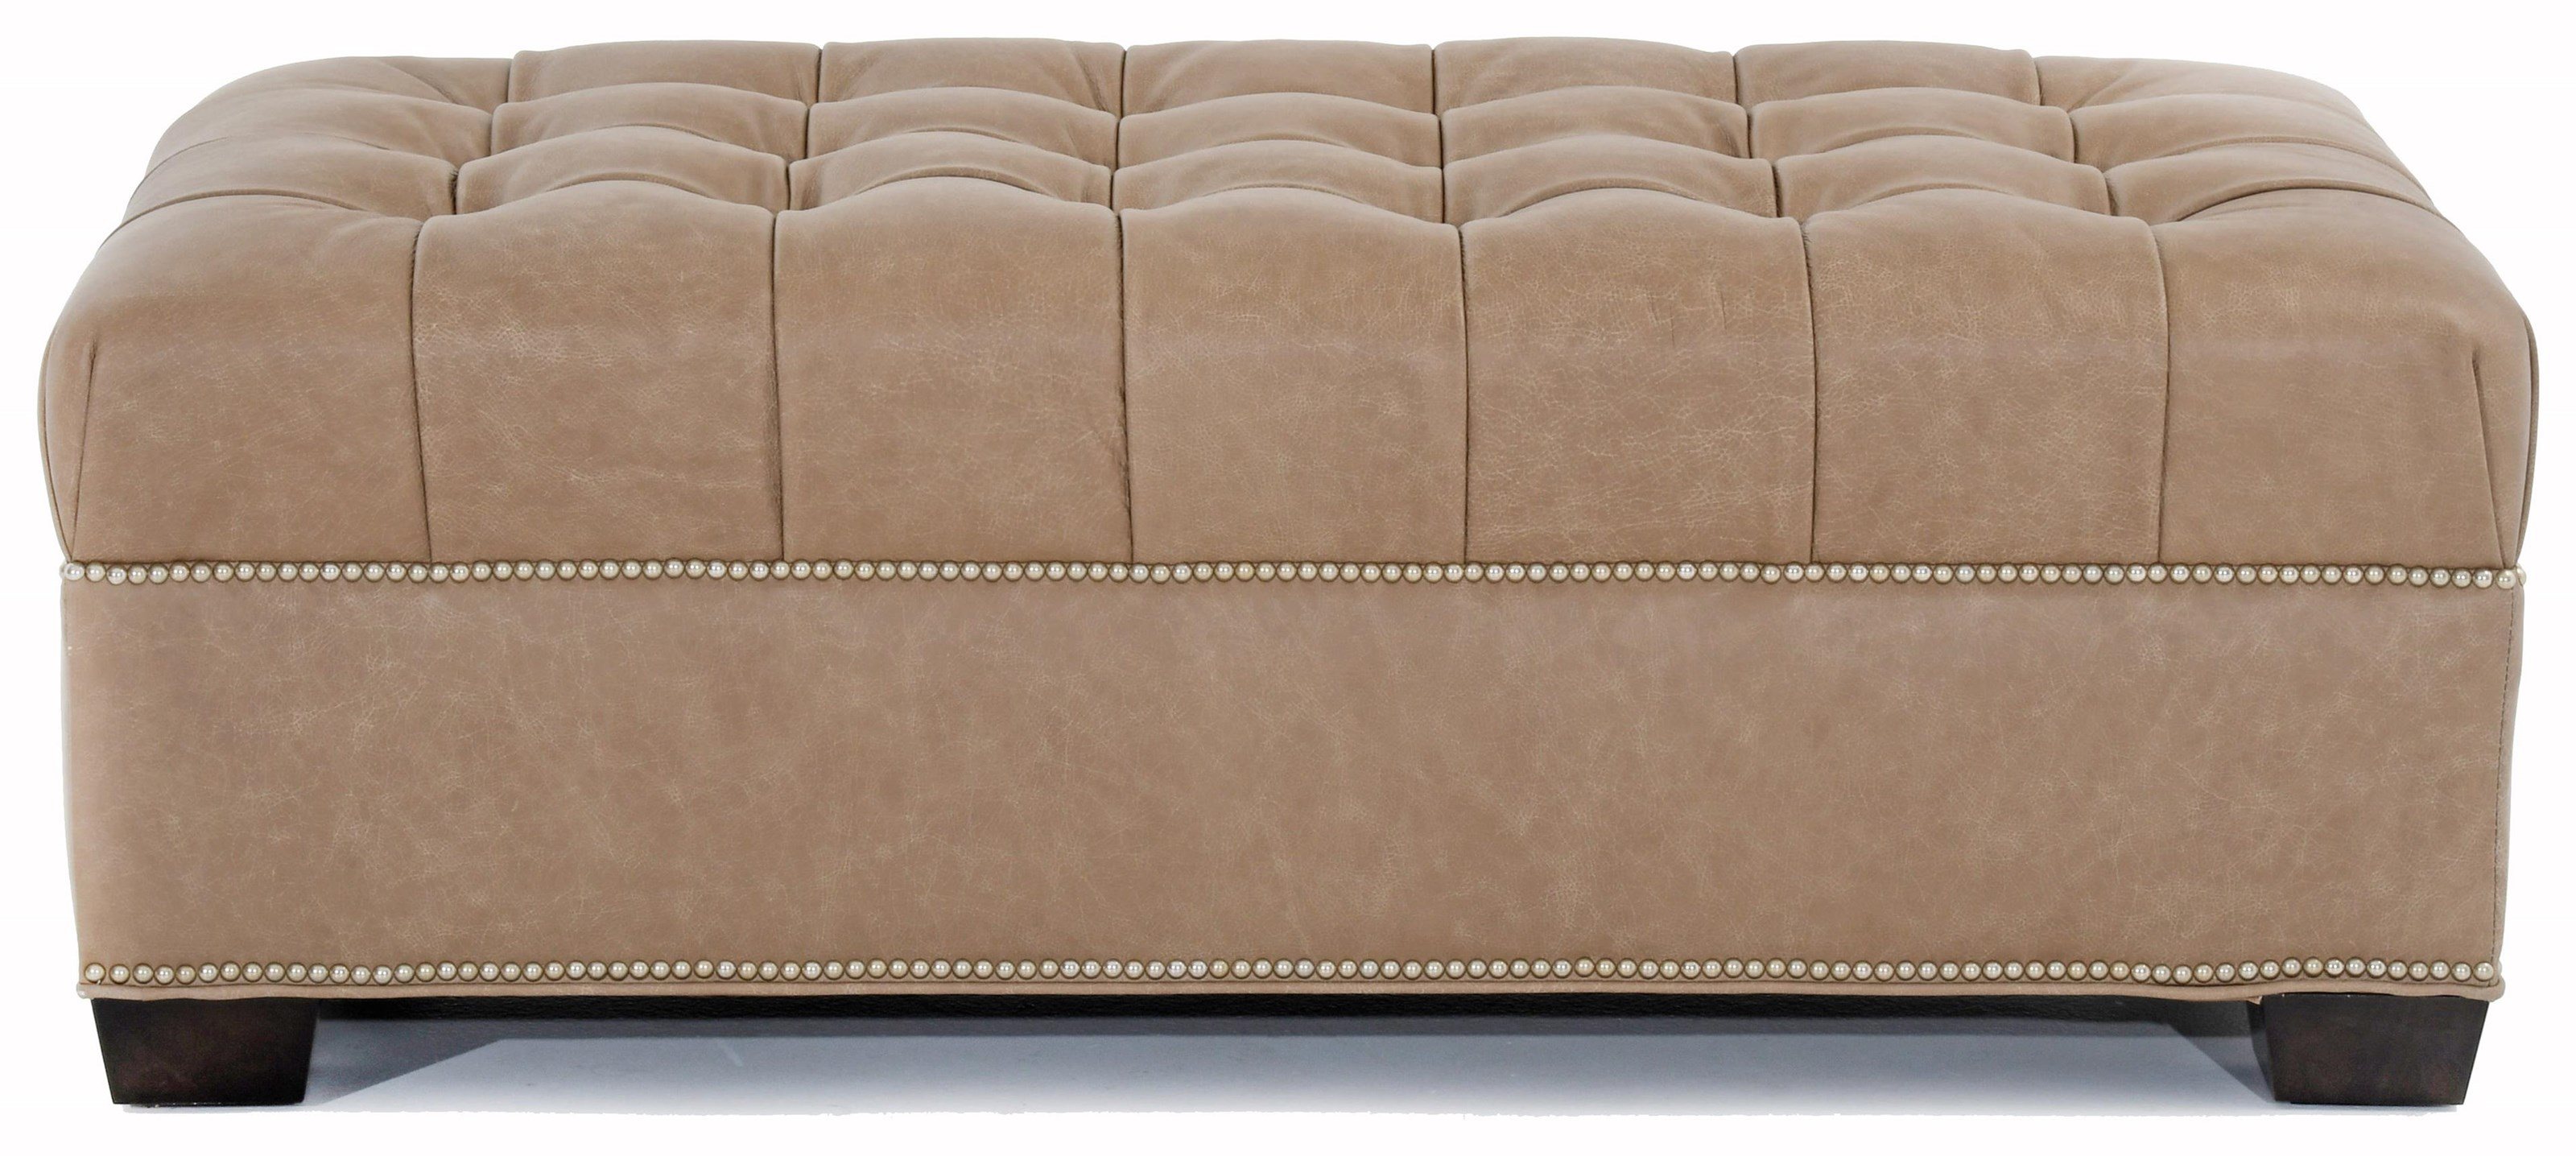 DYO Ottomans Accent Ottoman by Huntington House at Baer's Furniture